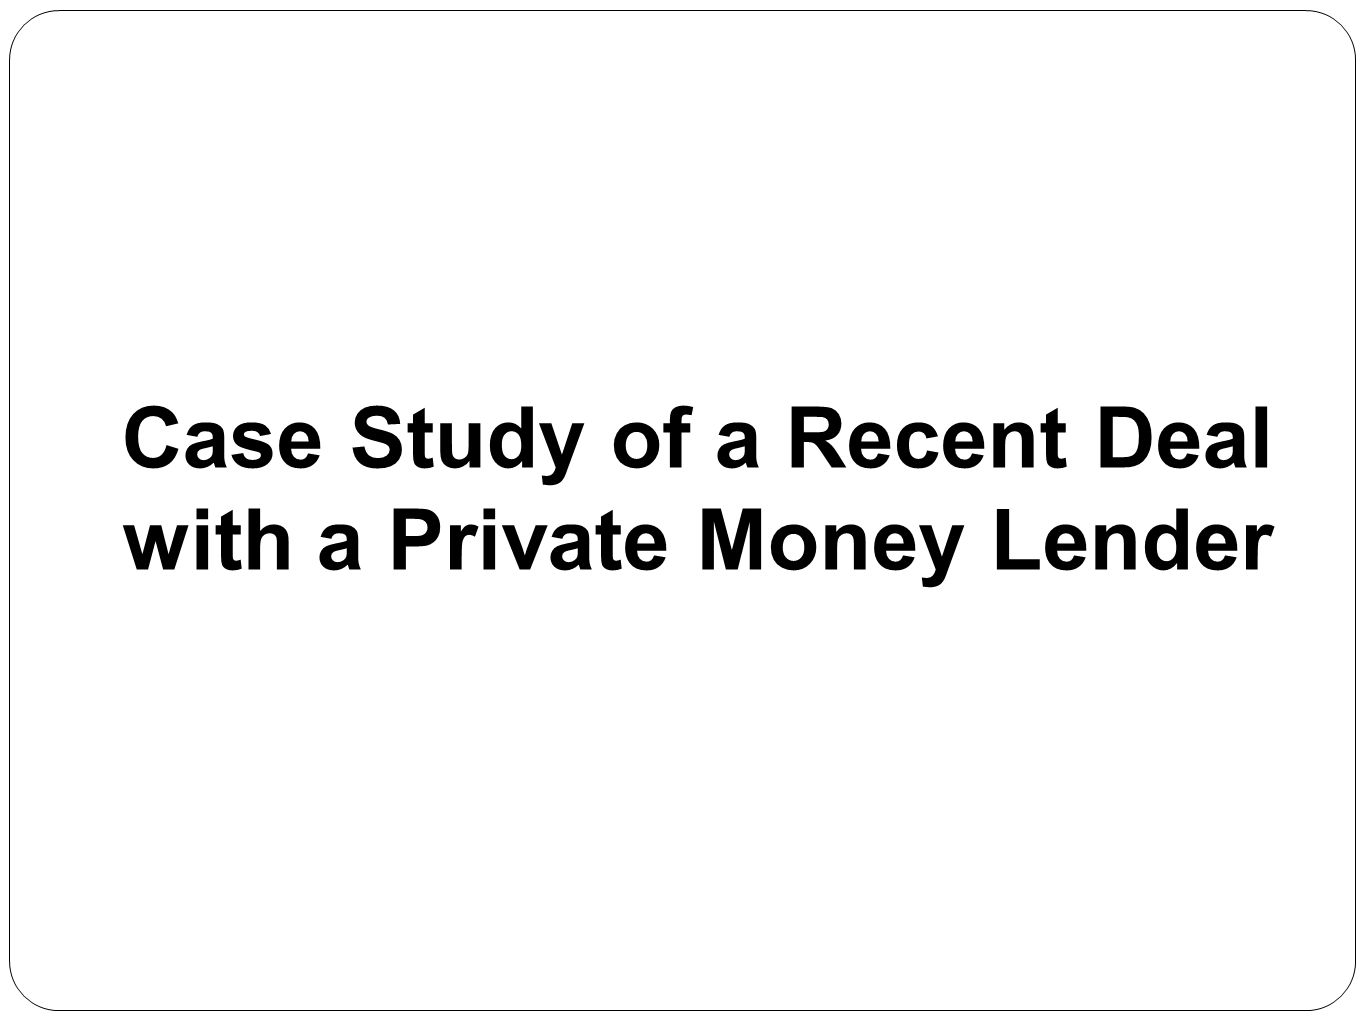 Case Study of a Recent Deal with a Private Money Lender